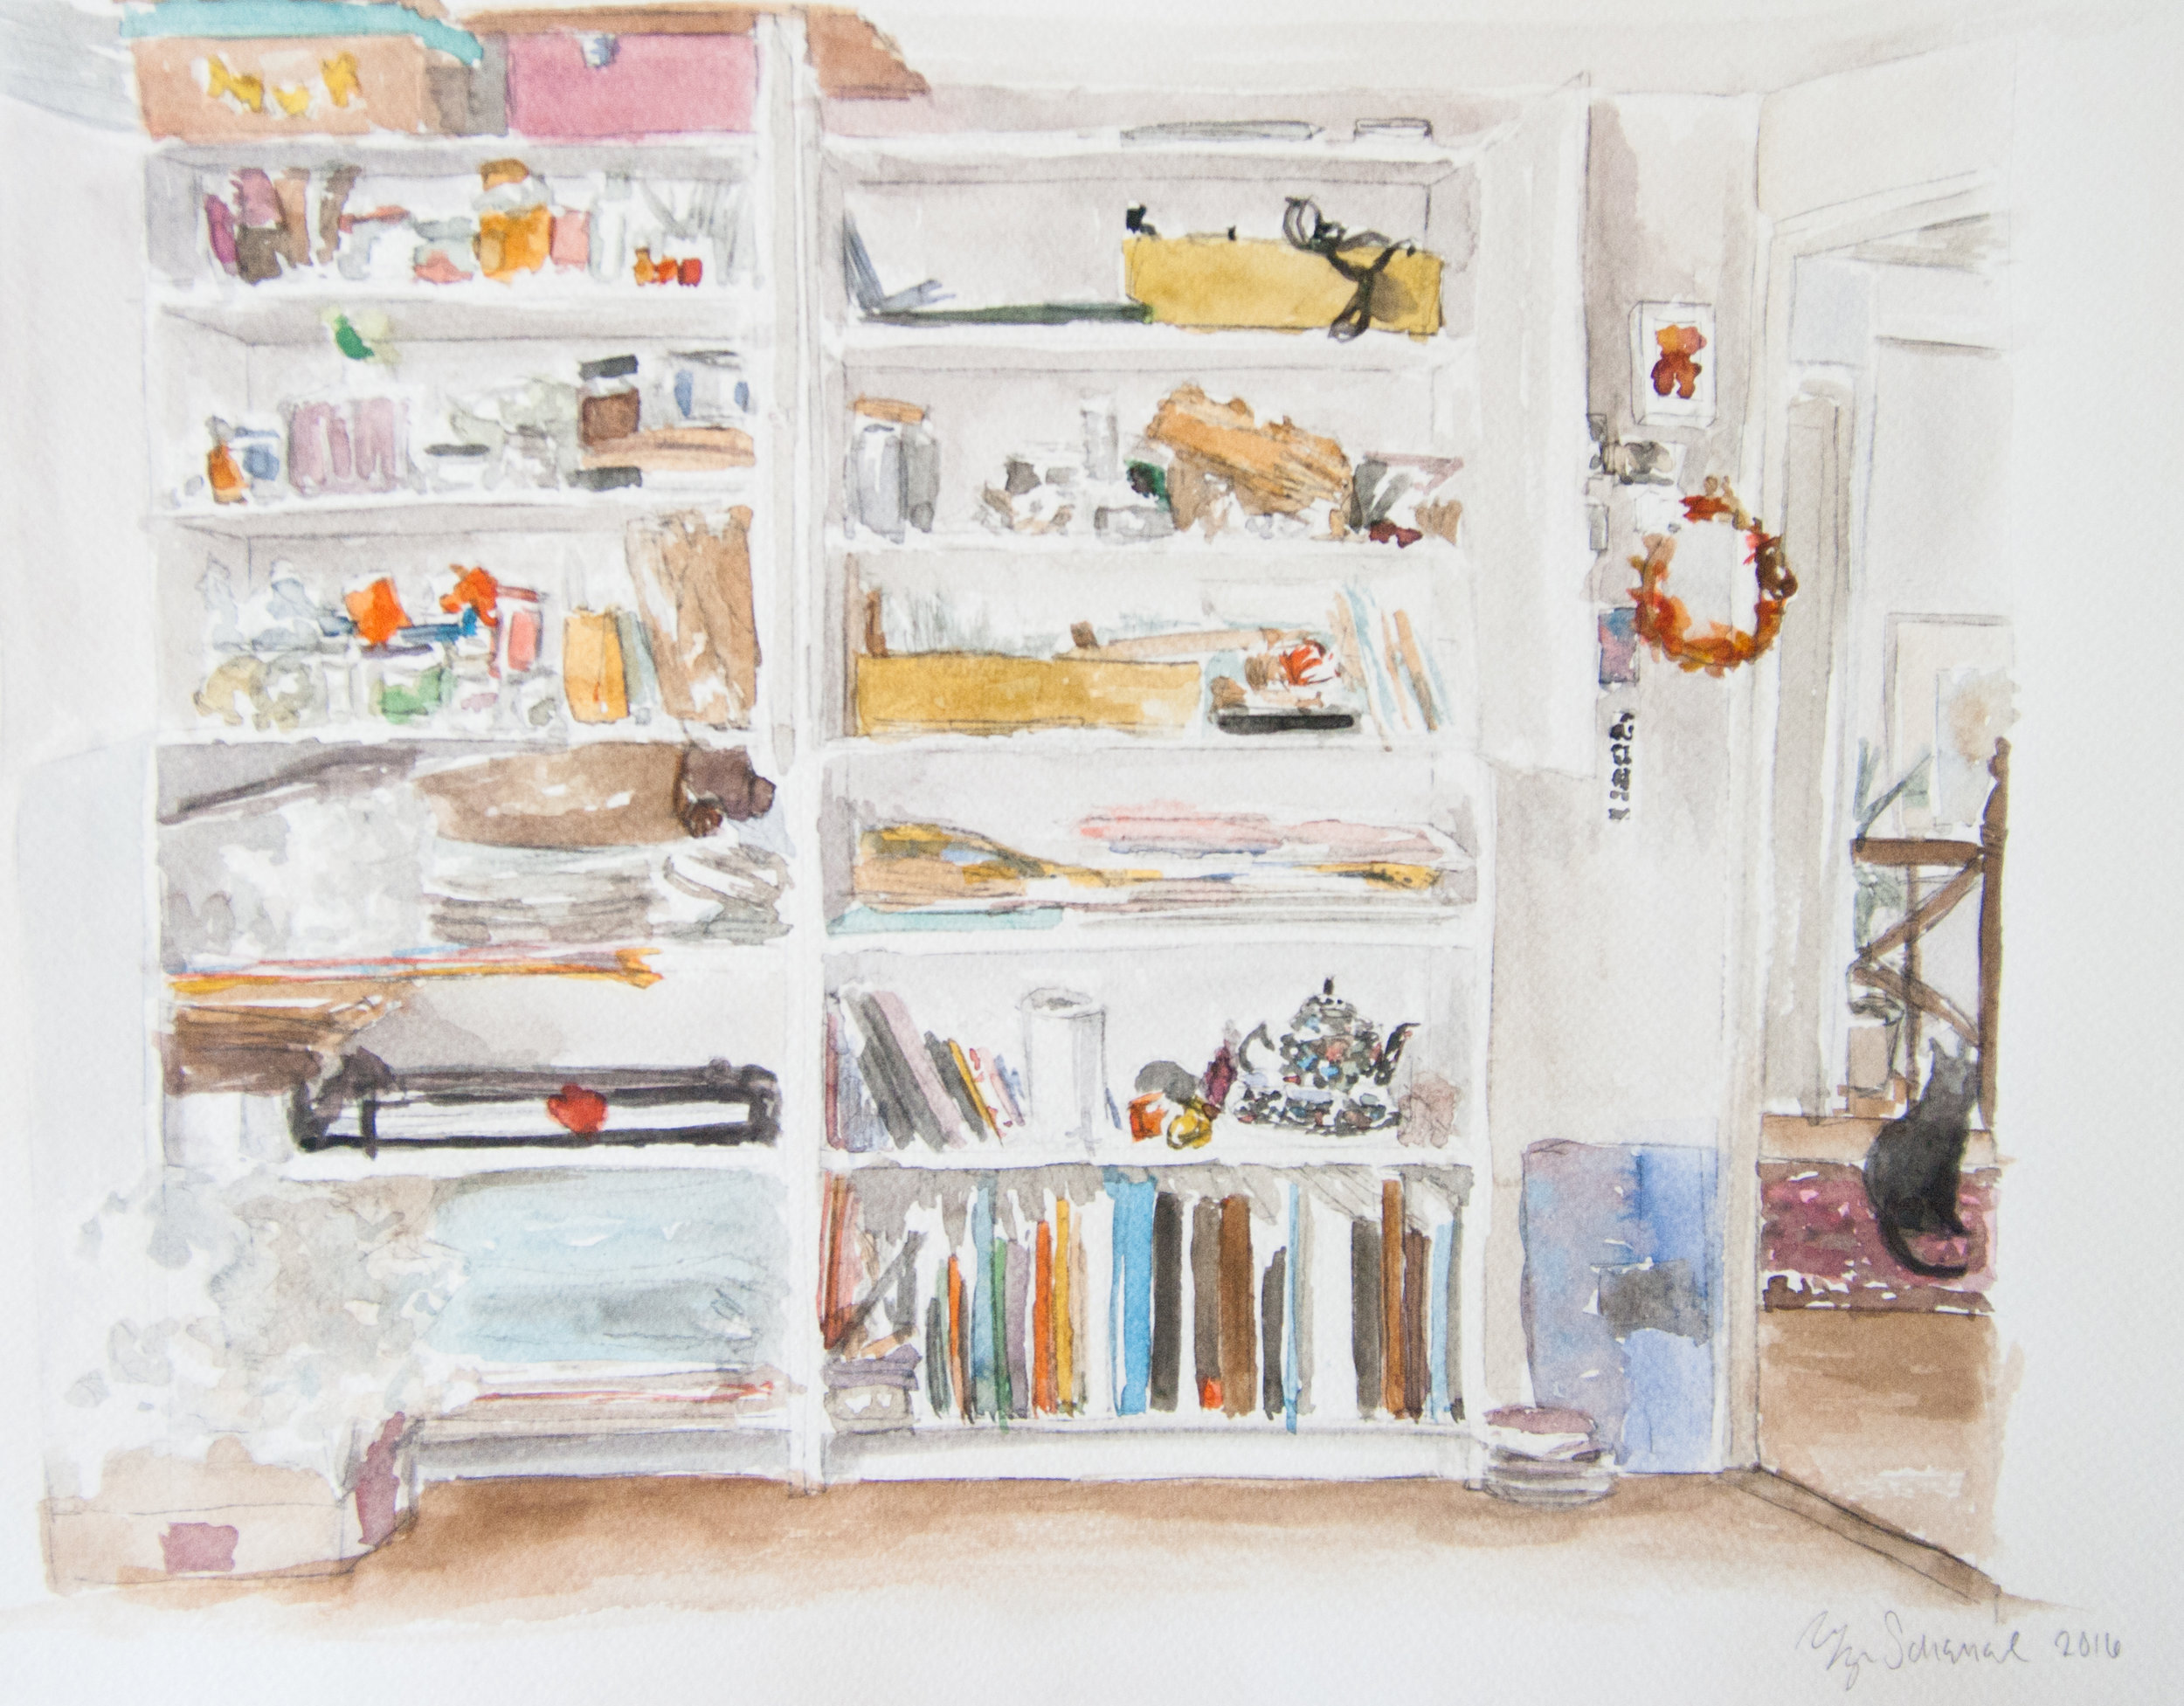 Studio Shelves. 37x30cm. Watercolor, gouache, and graphite on paper. 2016.